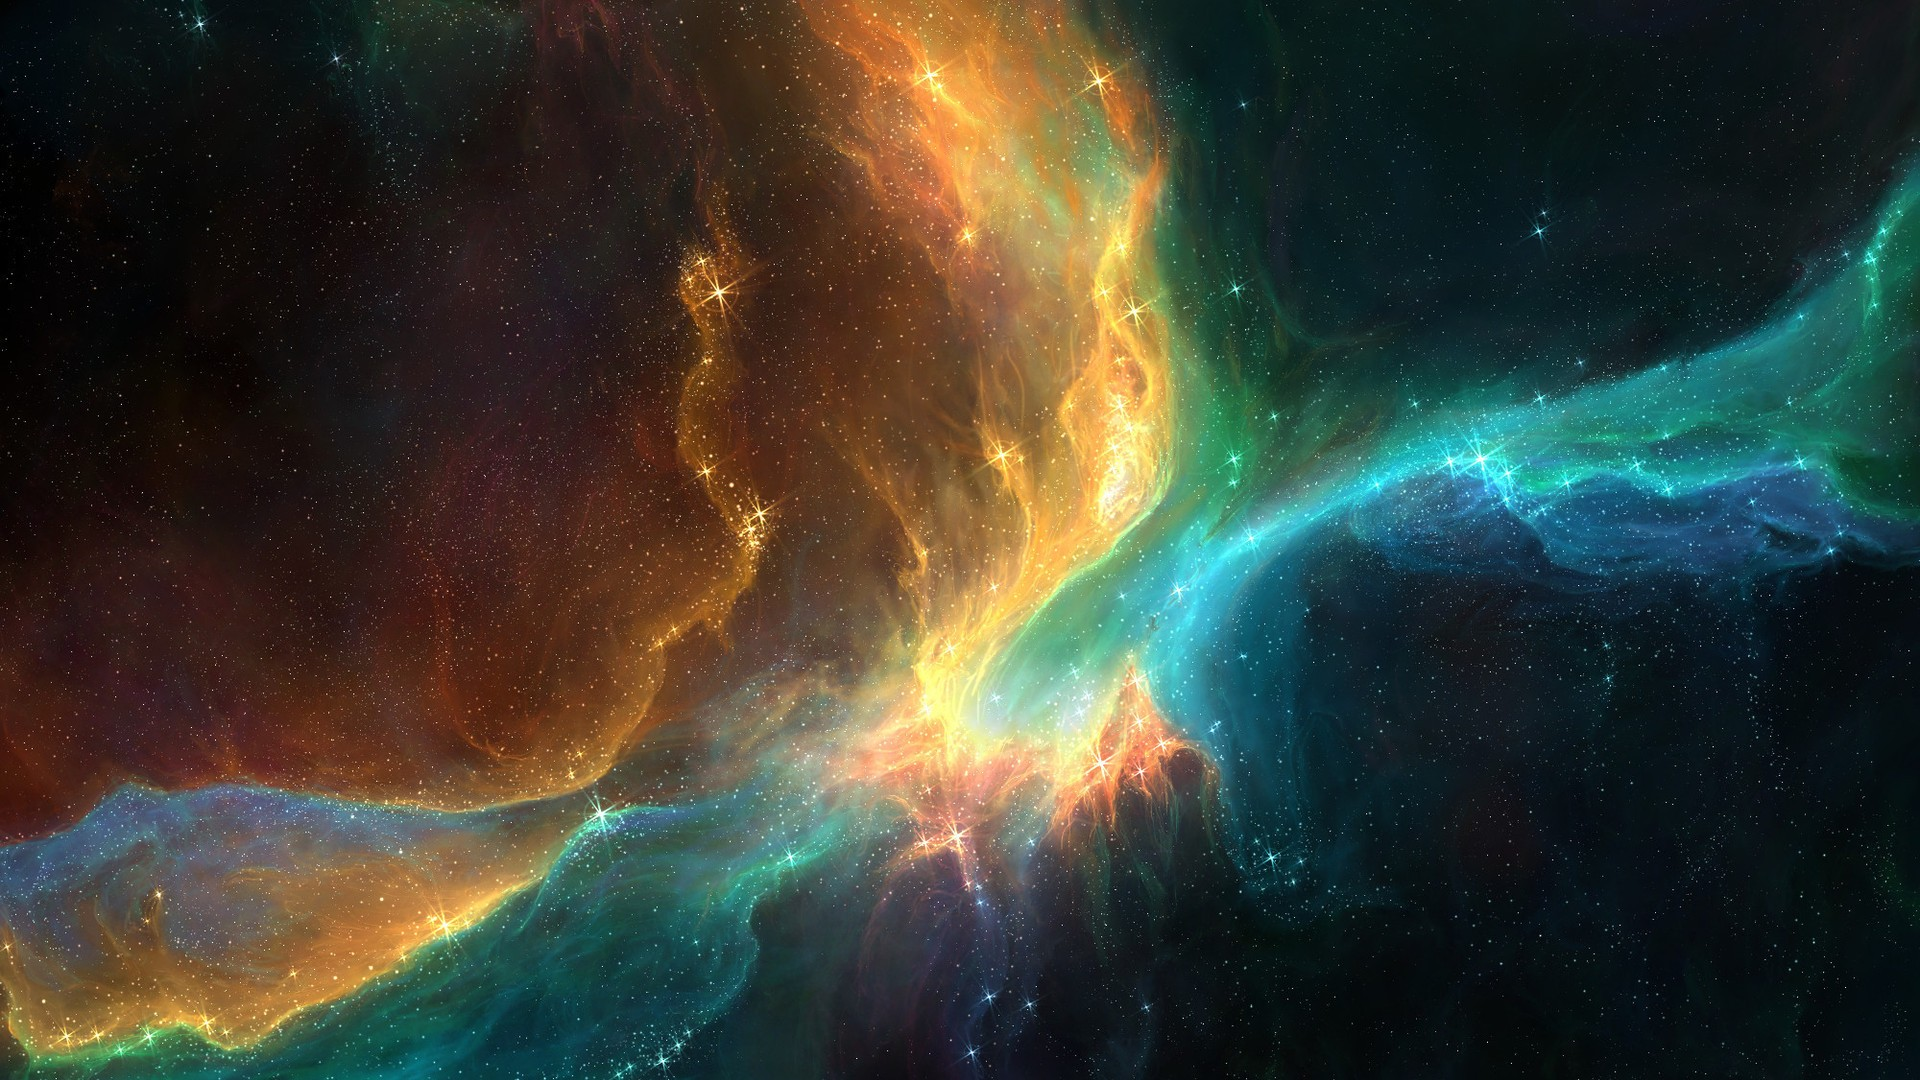 P Wallpaper Space ① Download Free Amazing Full Hd Wallpapers